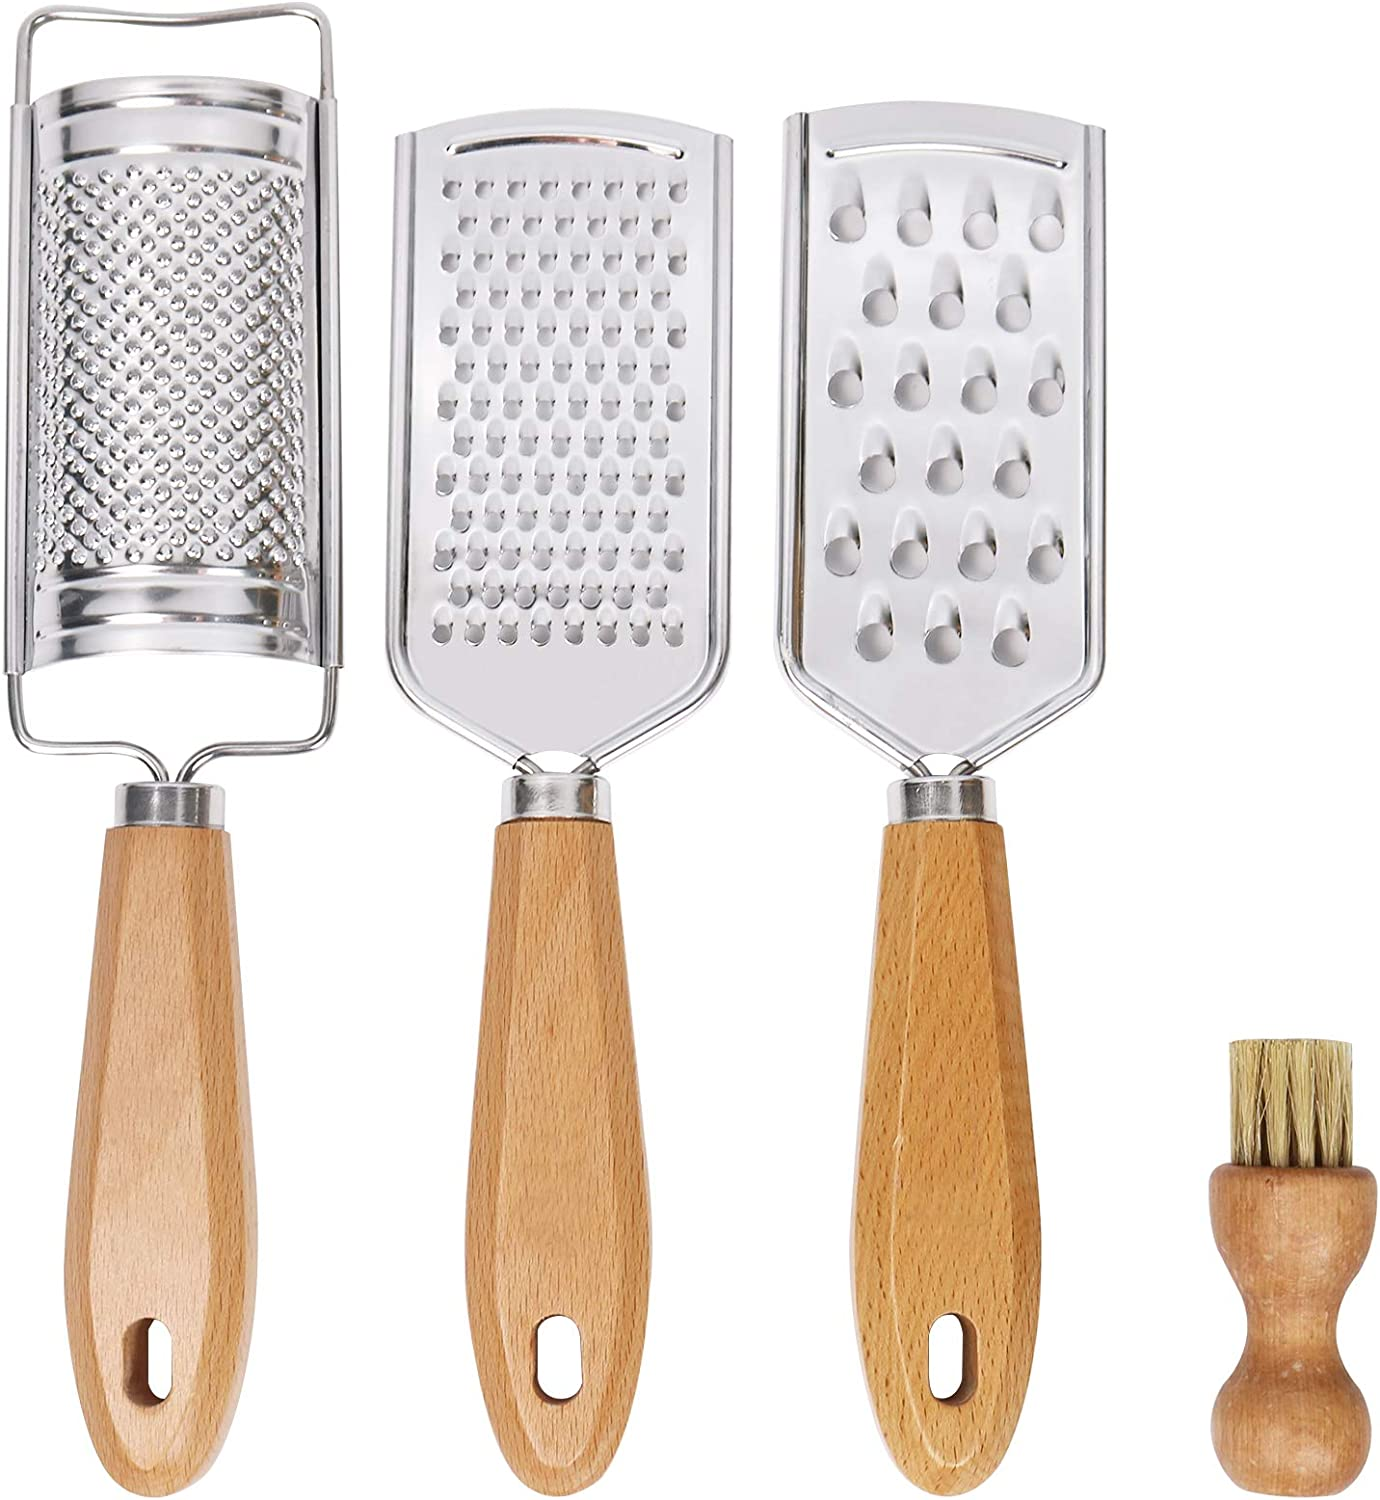 Hand Held Cheese Graters with Cleaning Brush Set, Mini Stainless Steel Vegetable Grater with Wood Handle, Multi-purpose Kitchen Food Shredder for Chocolate Butter Nuts Ginger by LAIBO